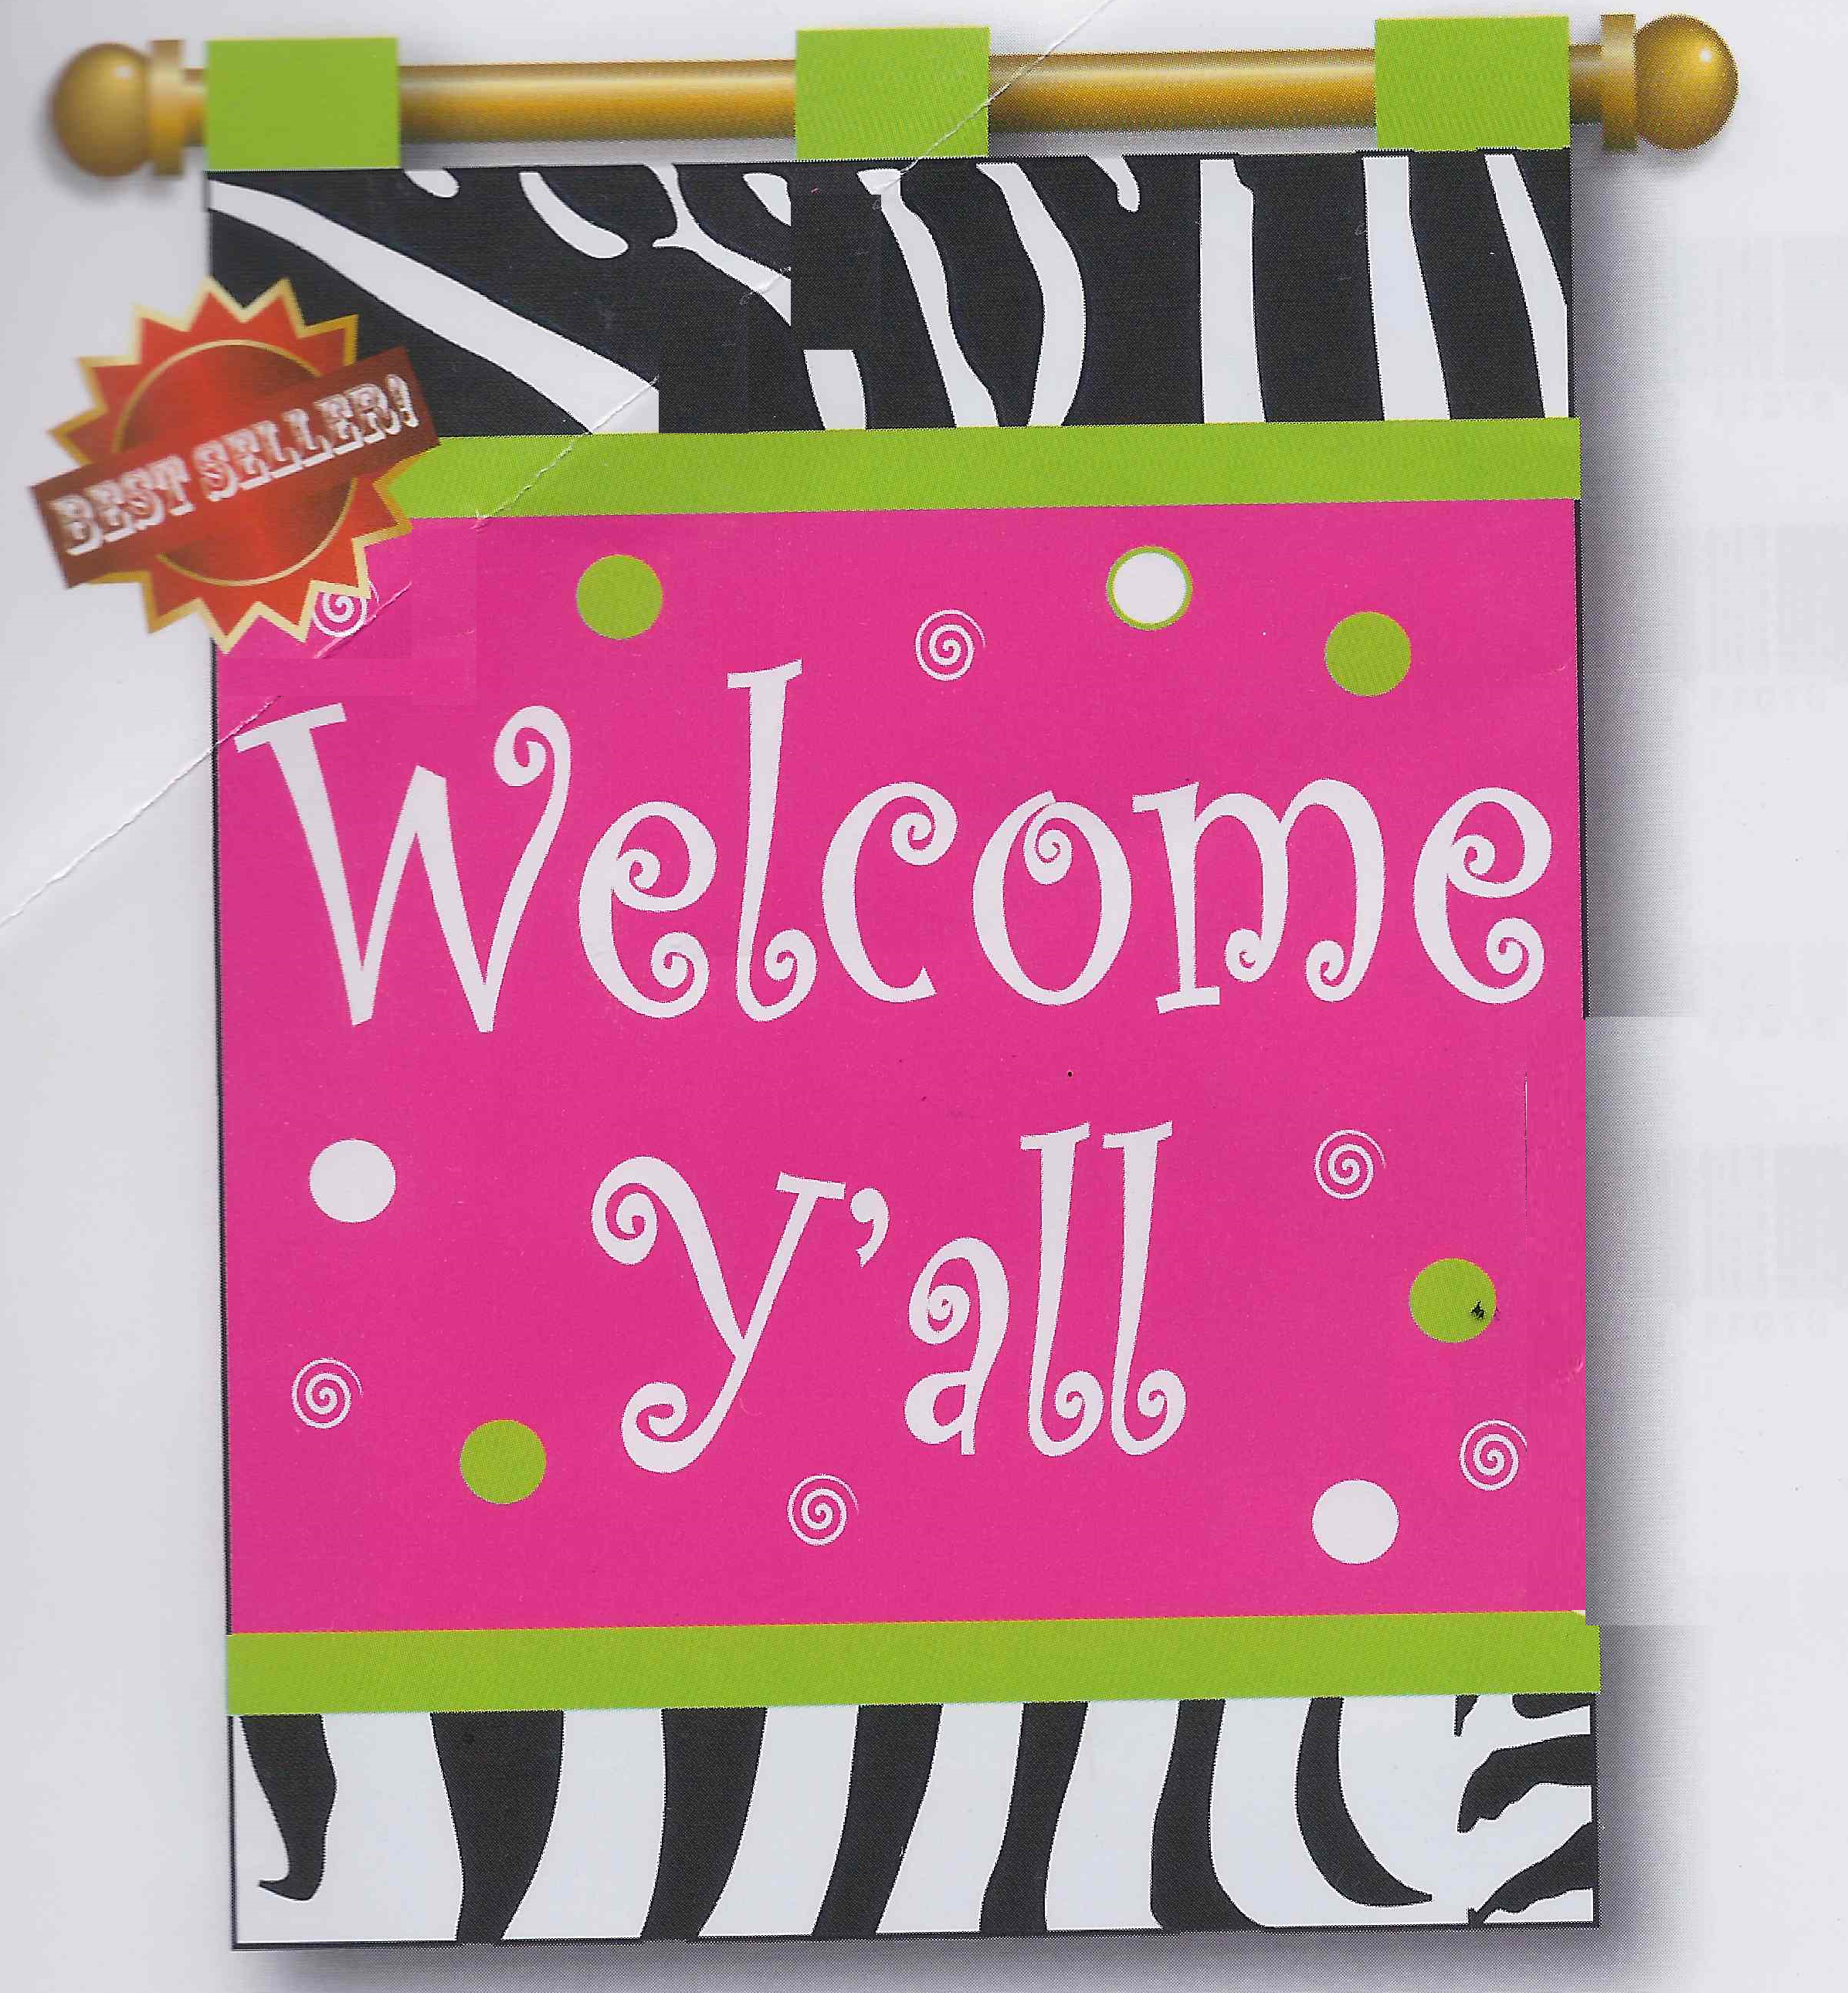 Welcome Yall flag from freckledfrogVA.com